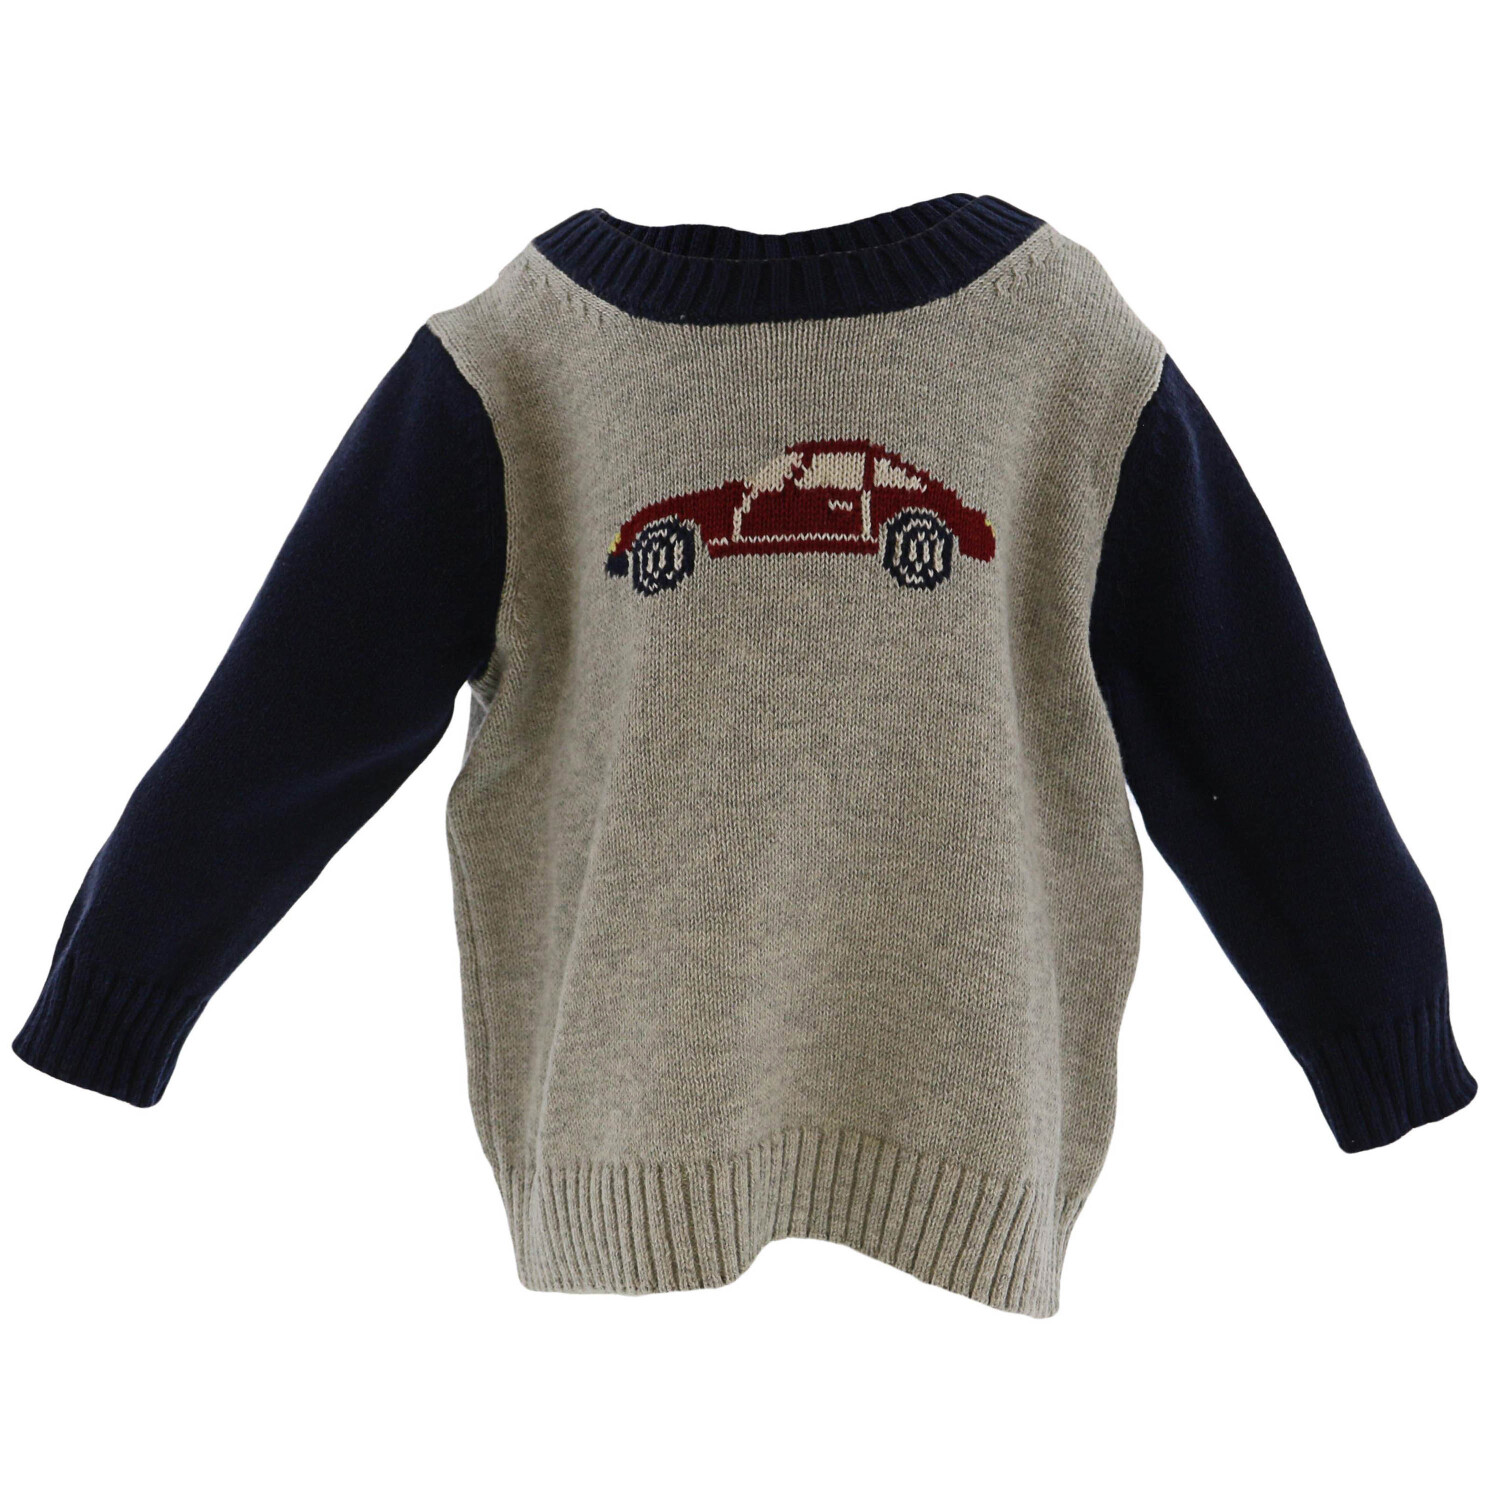 Janie And Jack Grey Car Sweater - 3-6 Months